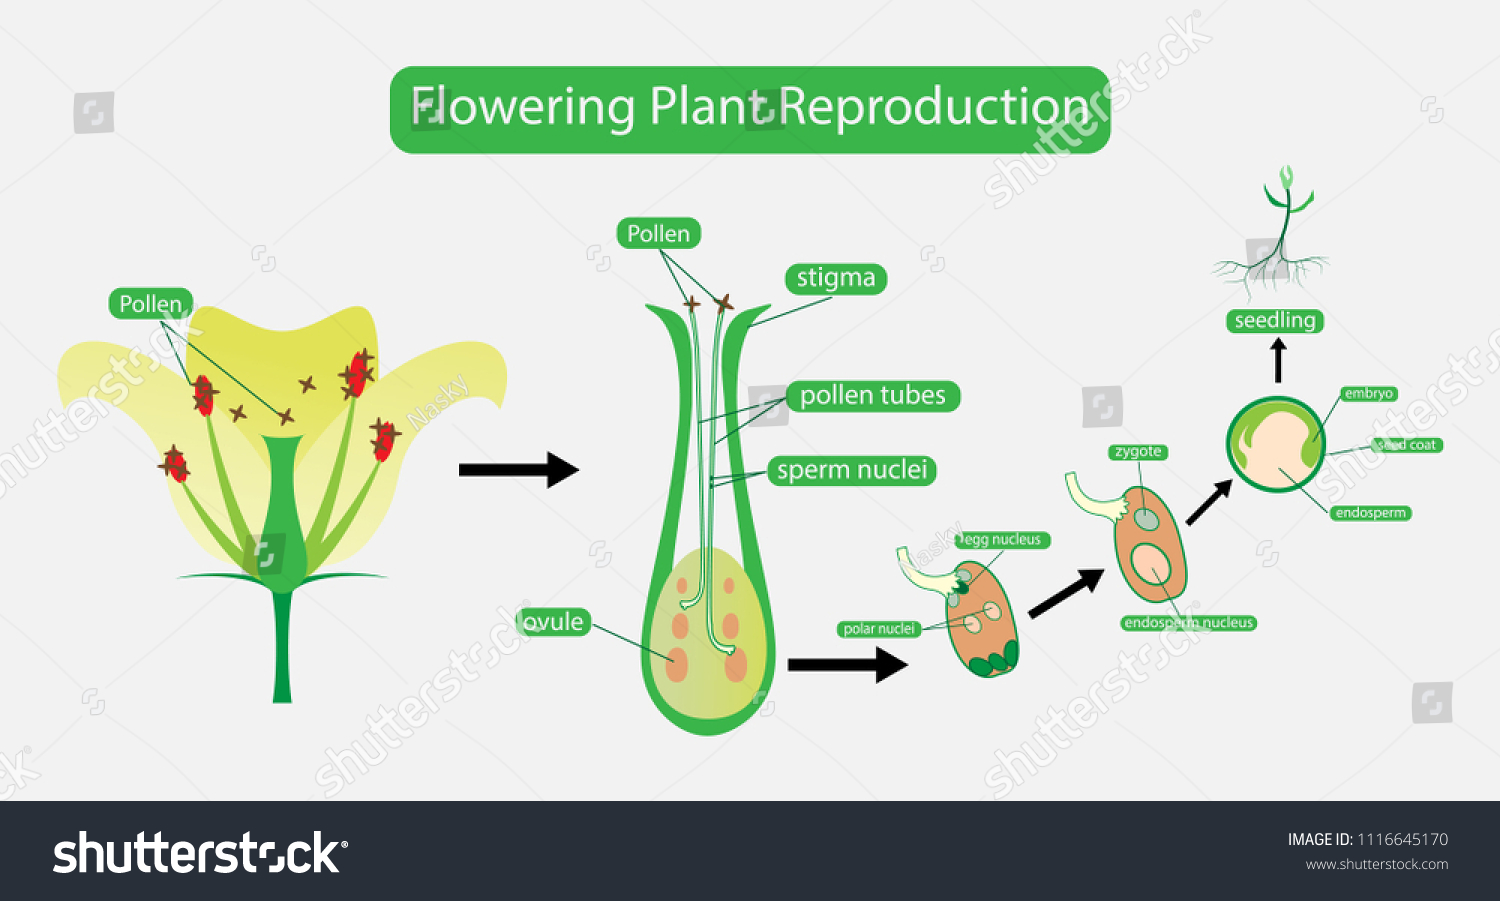 hight resolution of illustration of biology pollination in plant and flowering plant reproduction diagram